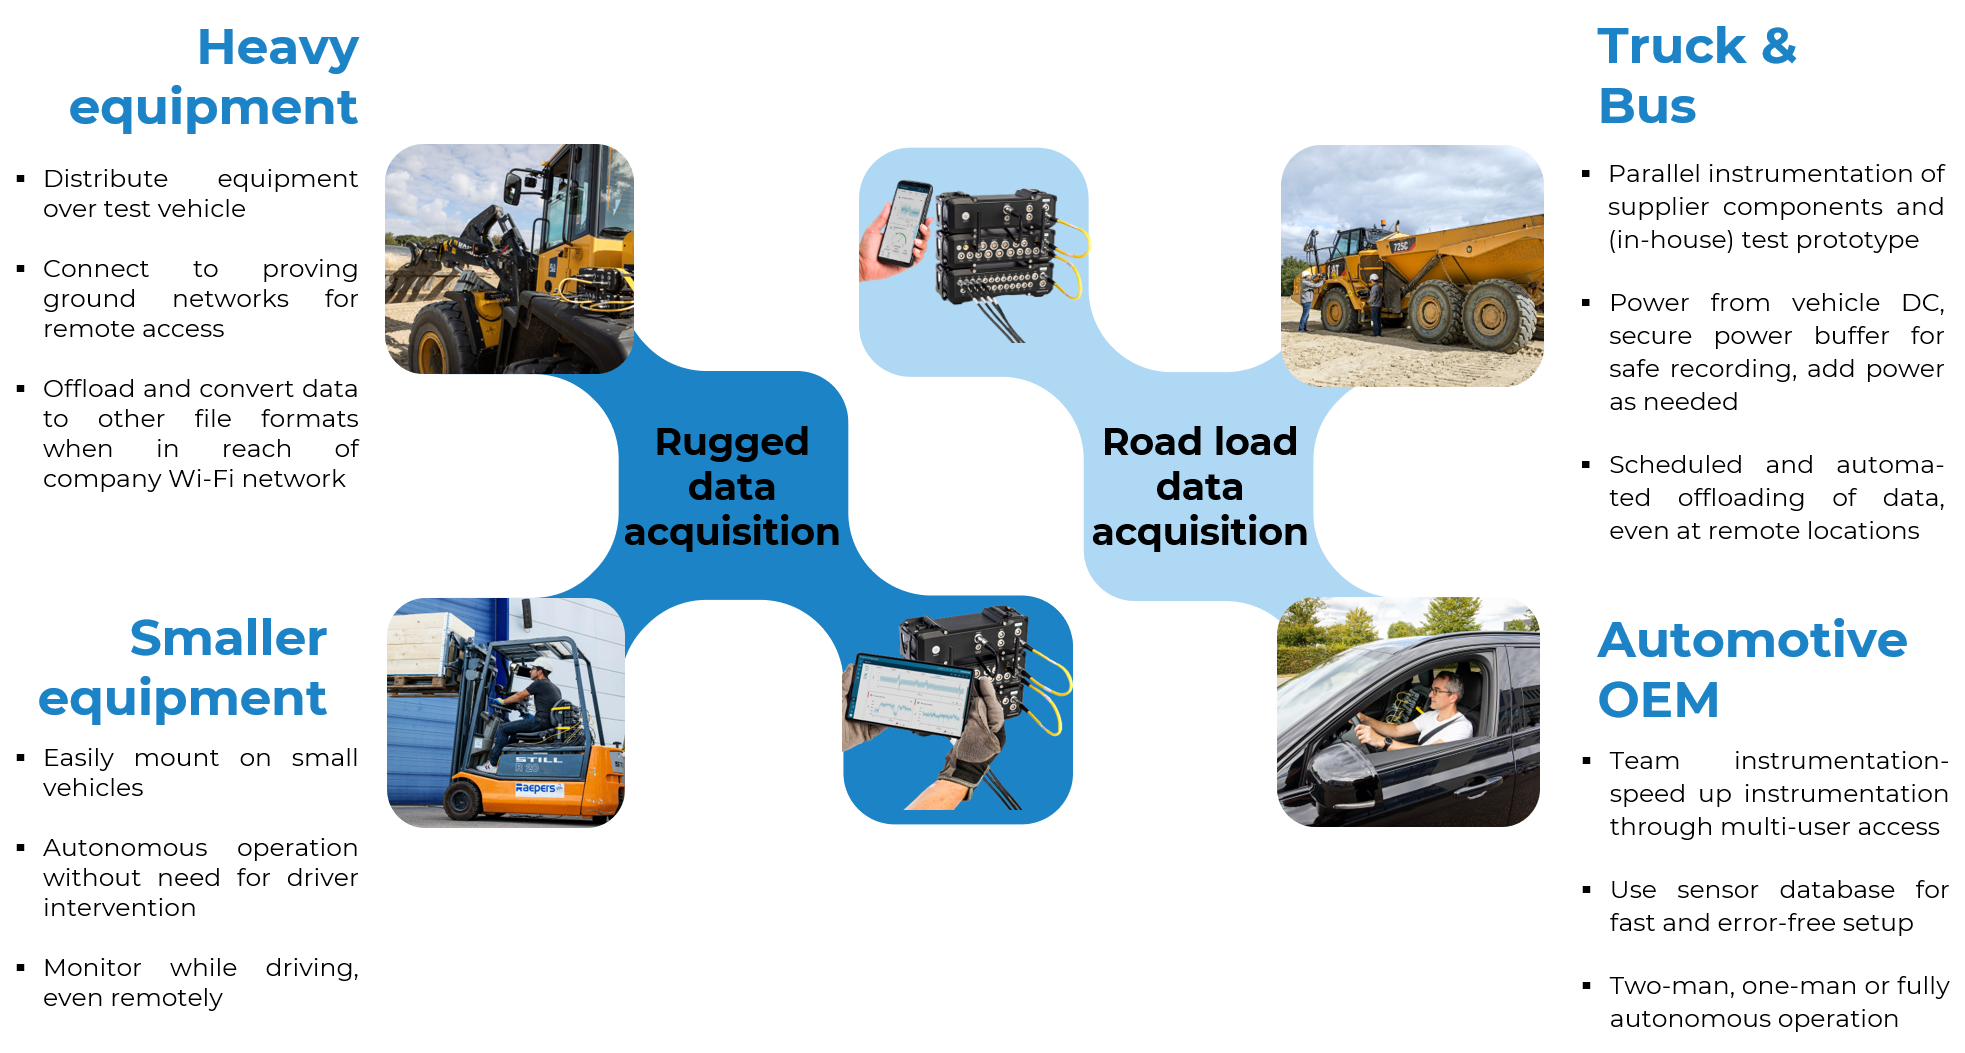 Rugged-road-load-acquistition-SCADAS-RS_2.png